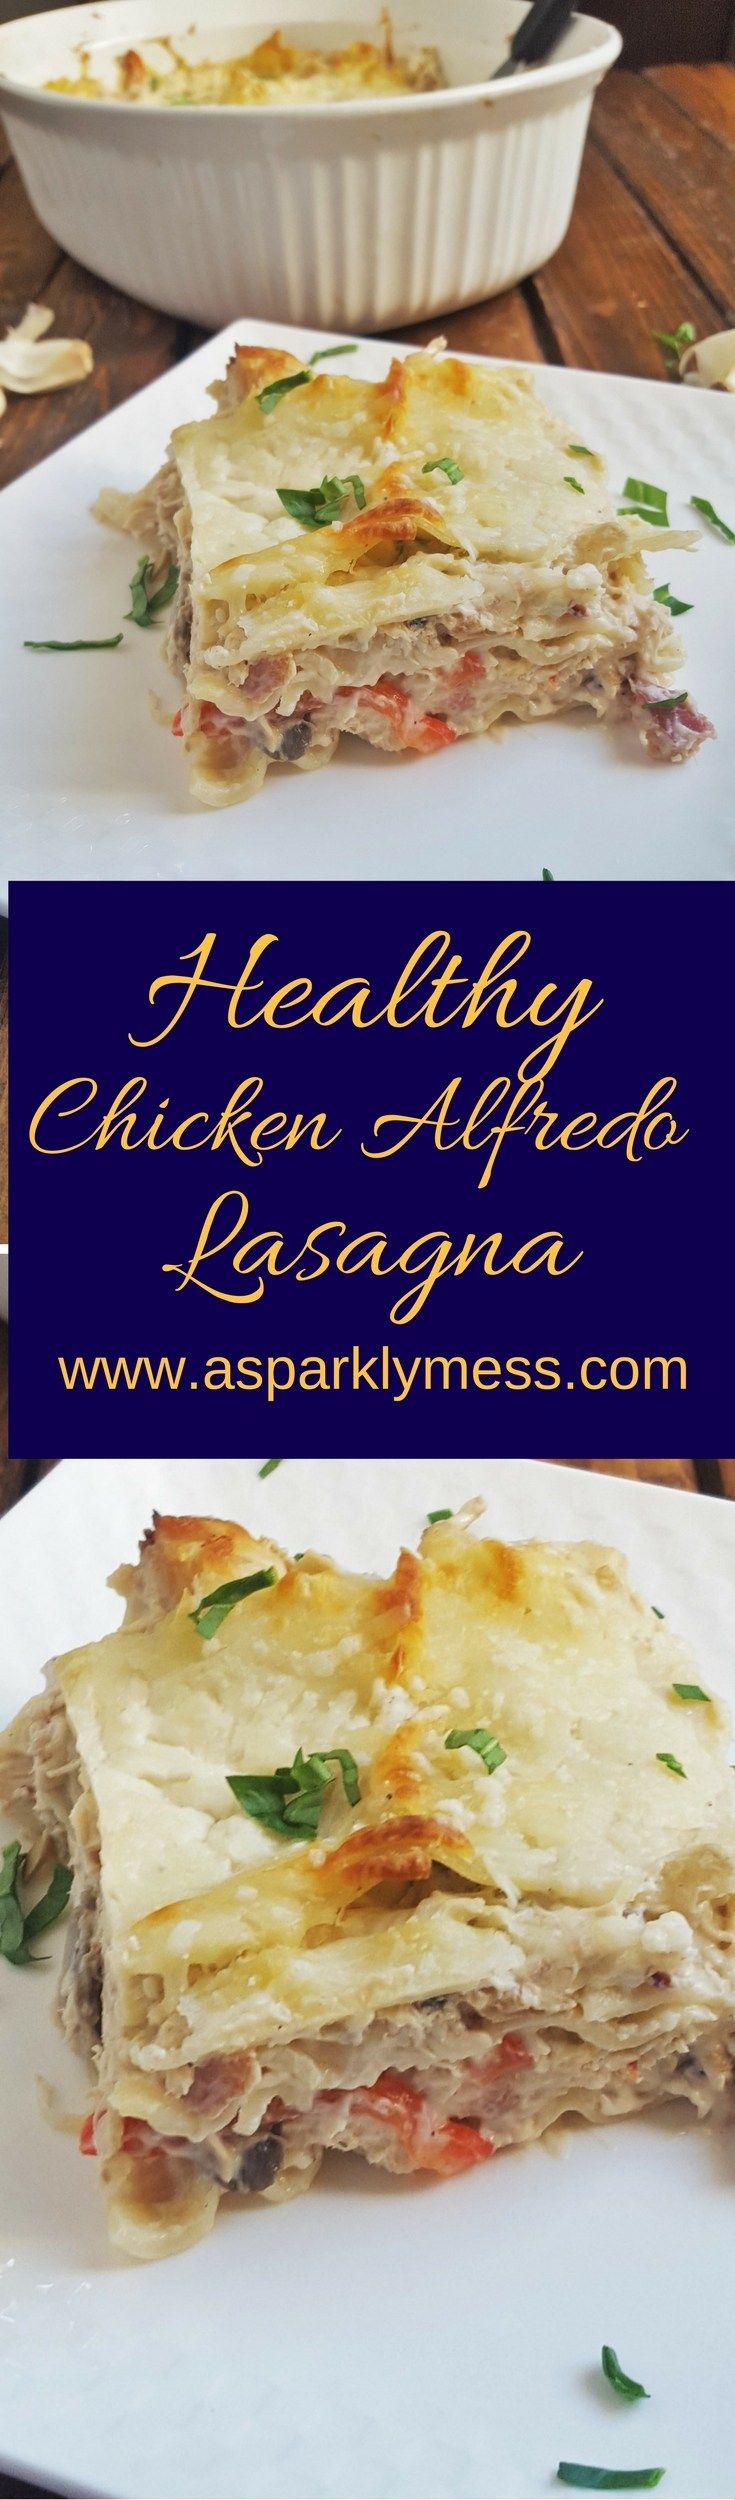 This easy Healthy Chicken Alfredo Lasagna recipe is lightened up with a healthier version of Alfredo sauce. It's just as delicious, creamy and flavorful, and a little bacon just makes everything better.